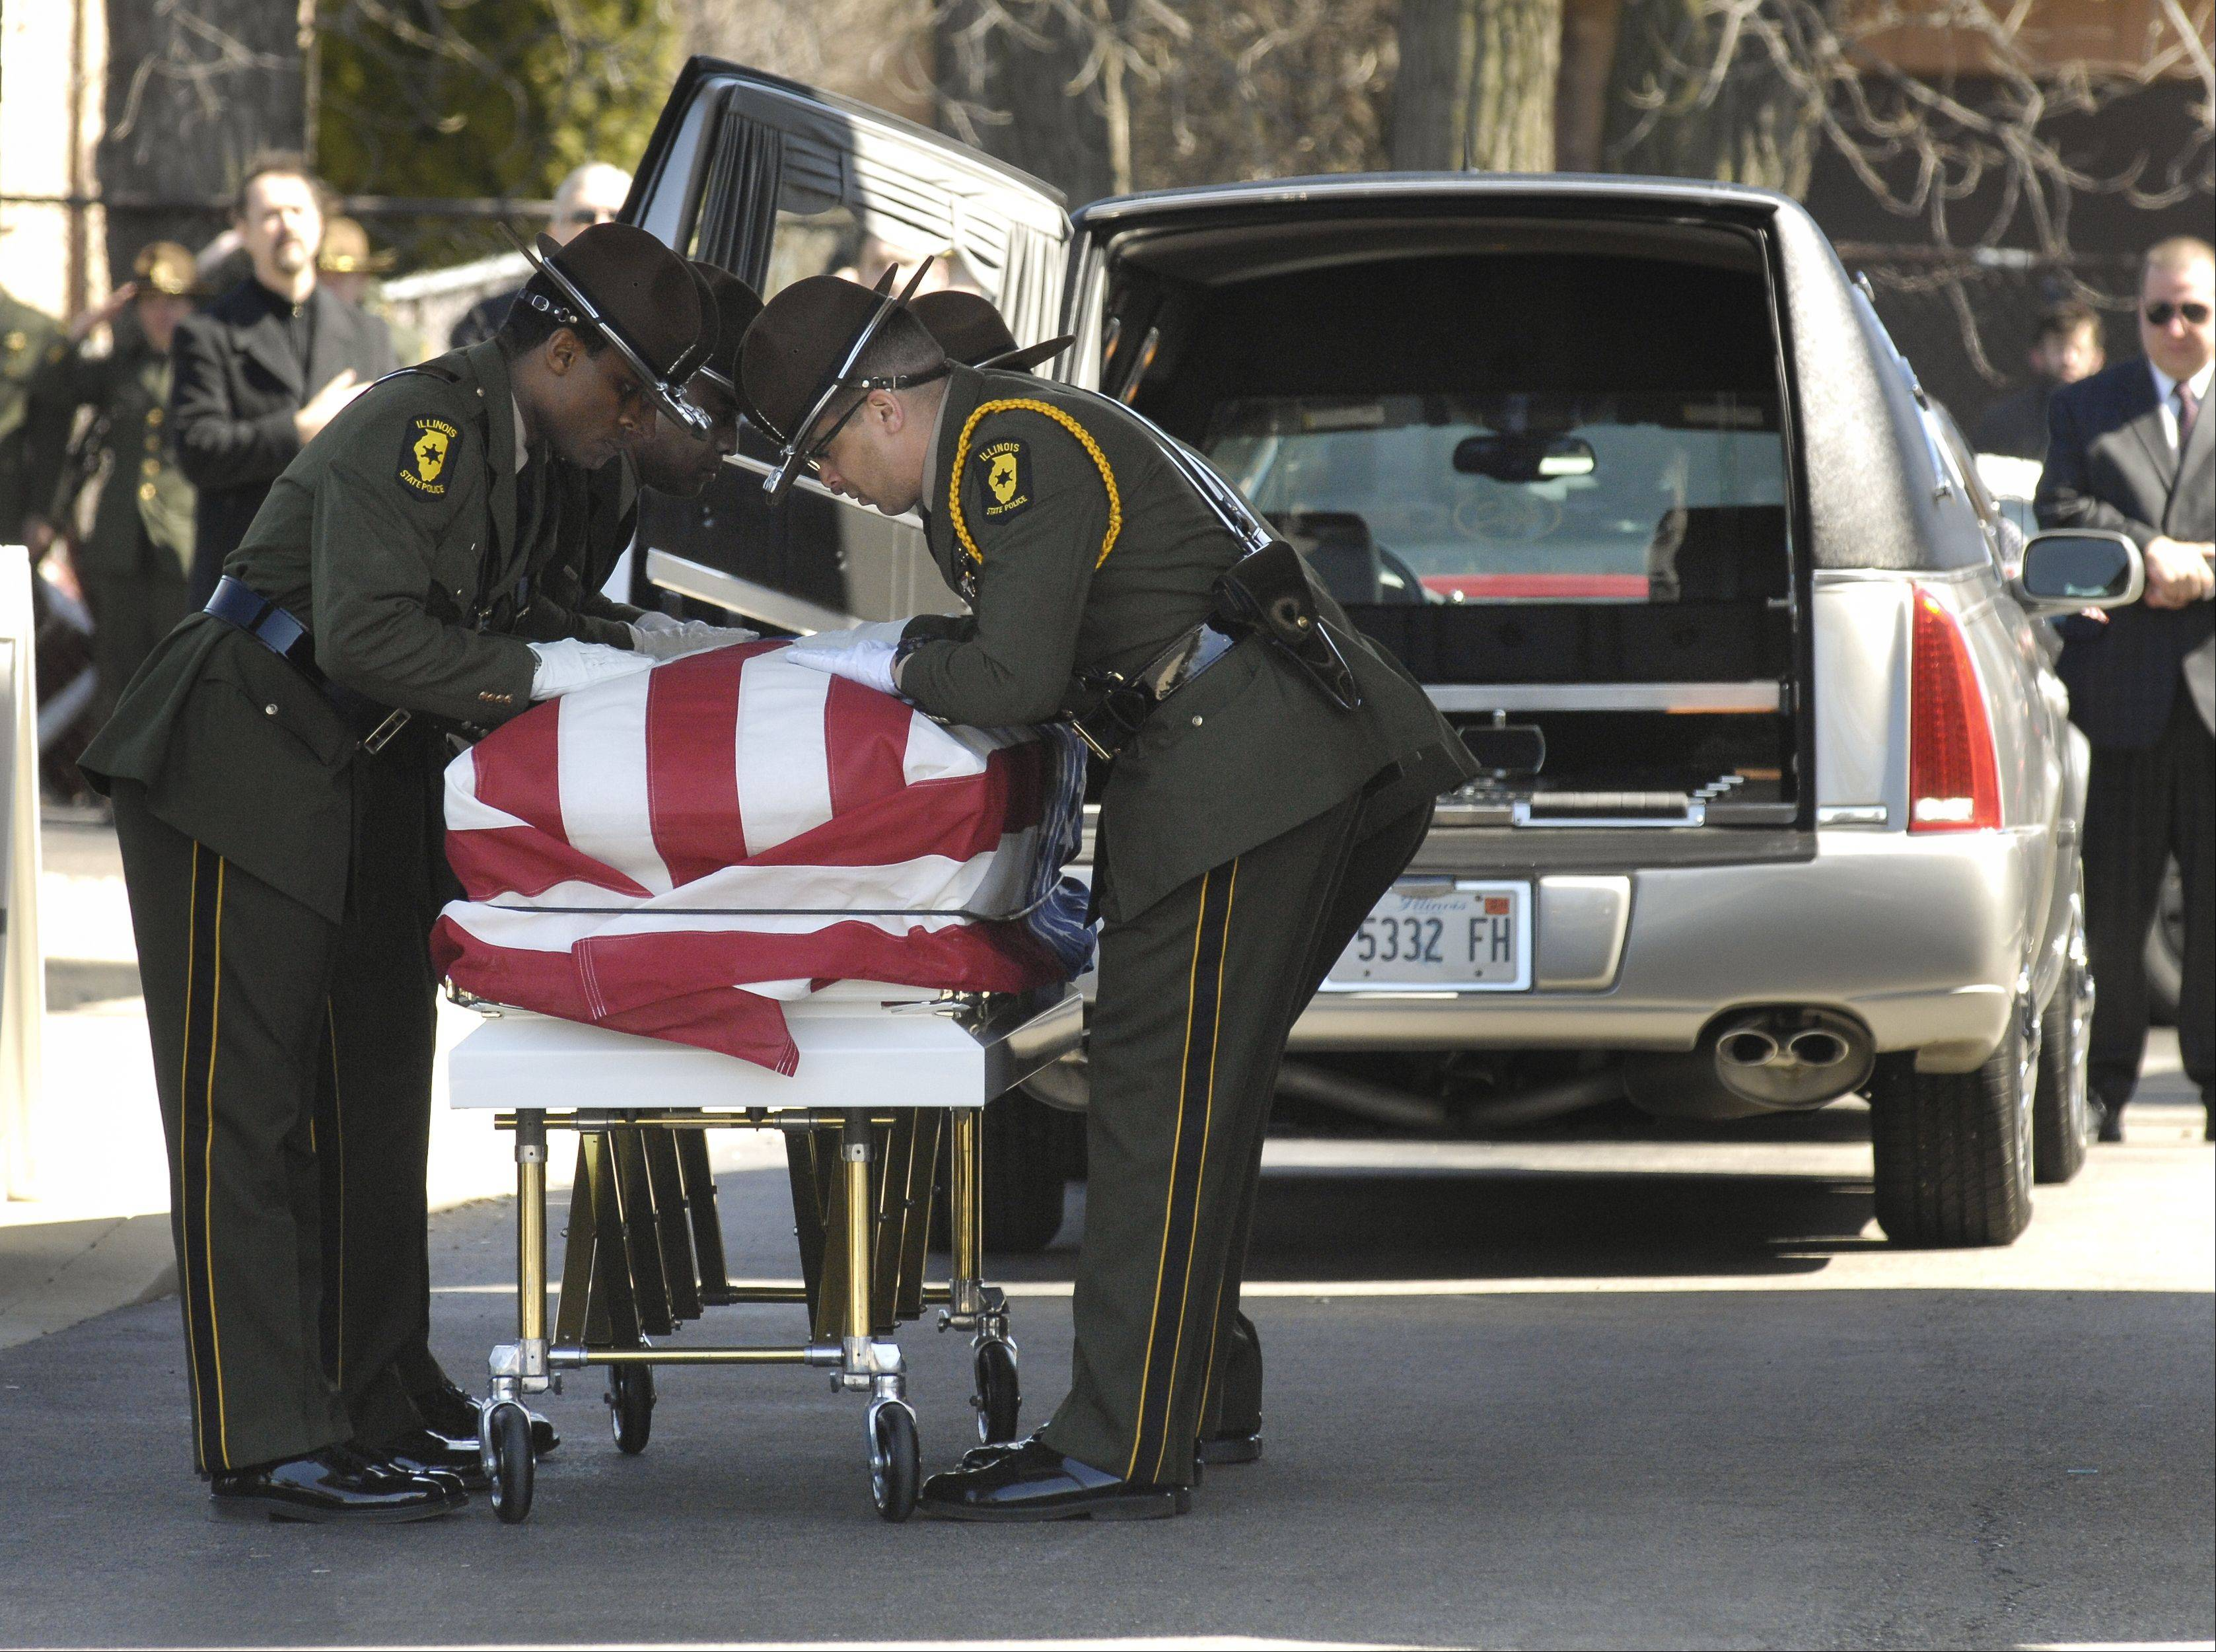 Fellow troopers carry the casket of fallen Illinois State Police Trooper James Sauter during his funeral service at Moraine Valley Church in Palos Heights Tuesday morning.